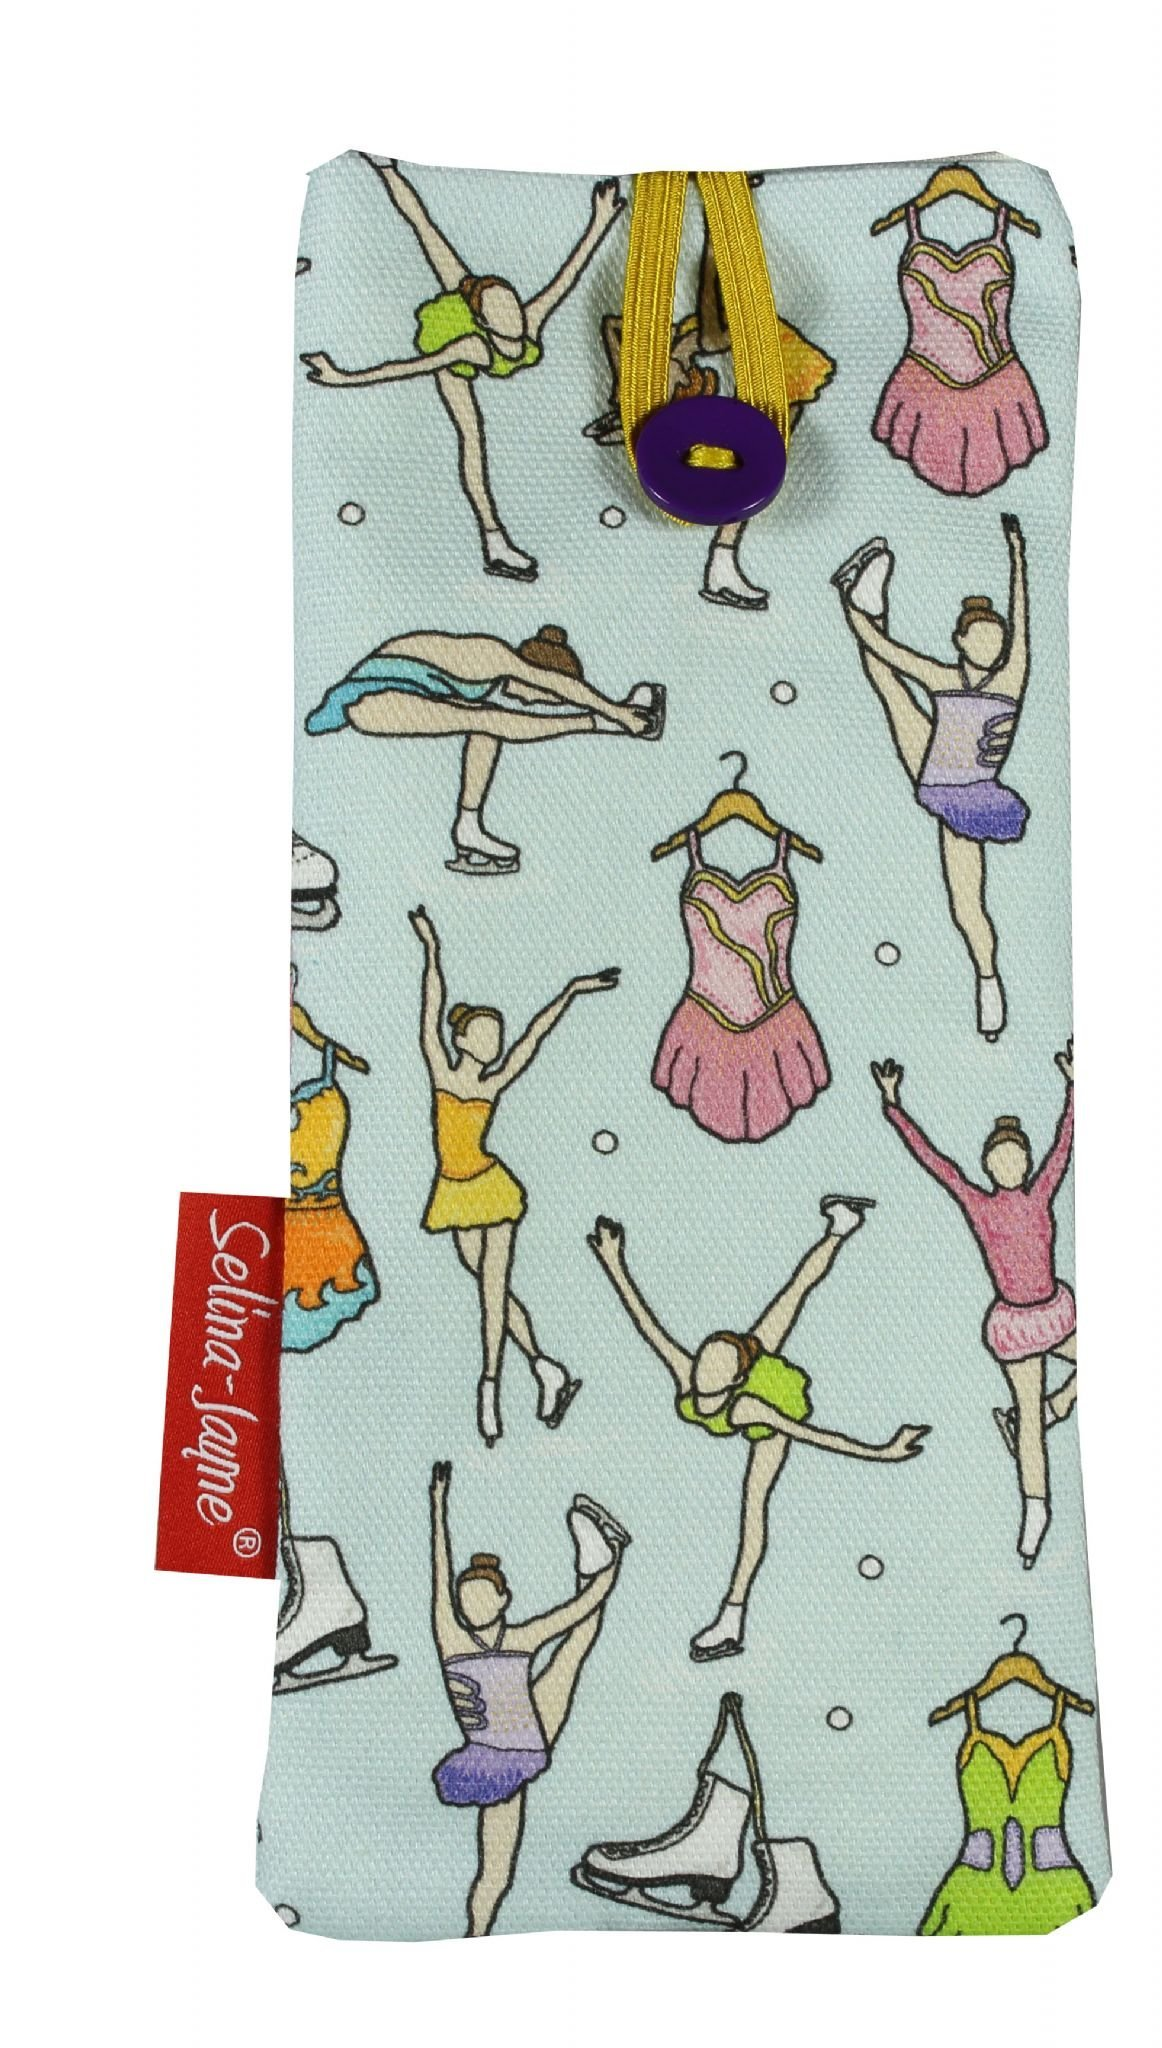 Selina-Jayne Ice Skating Limited Edition Designer Soft Fabric Glasses Case